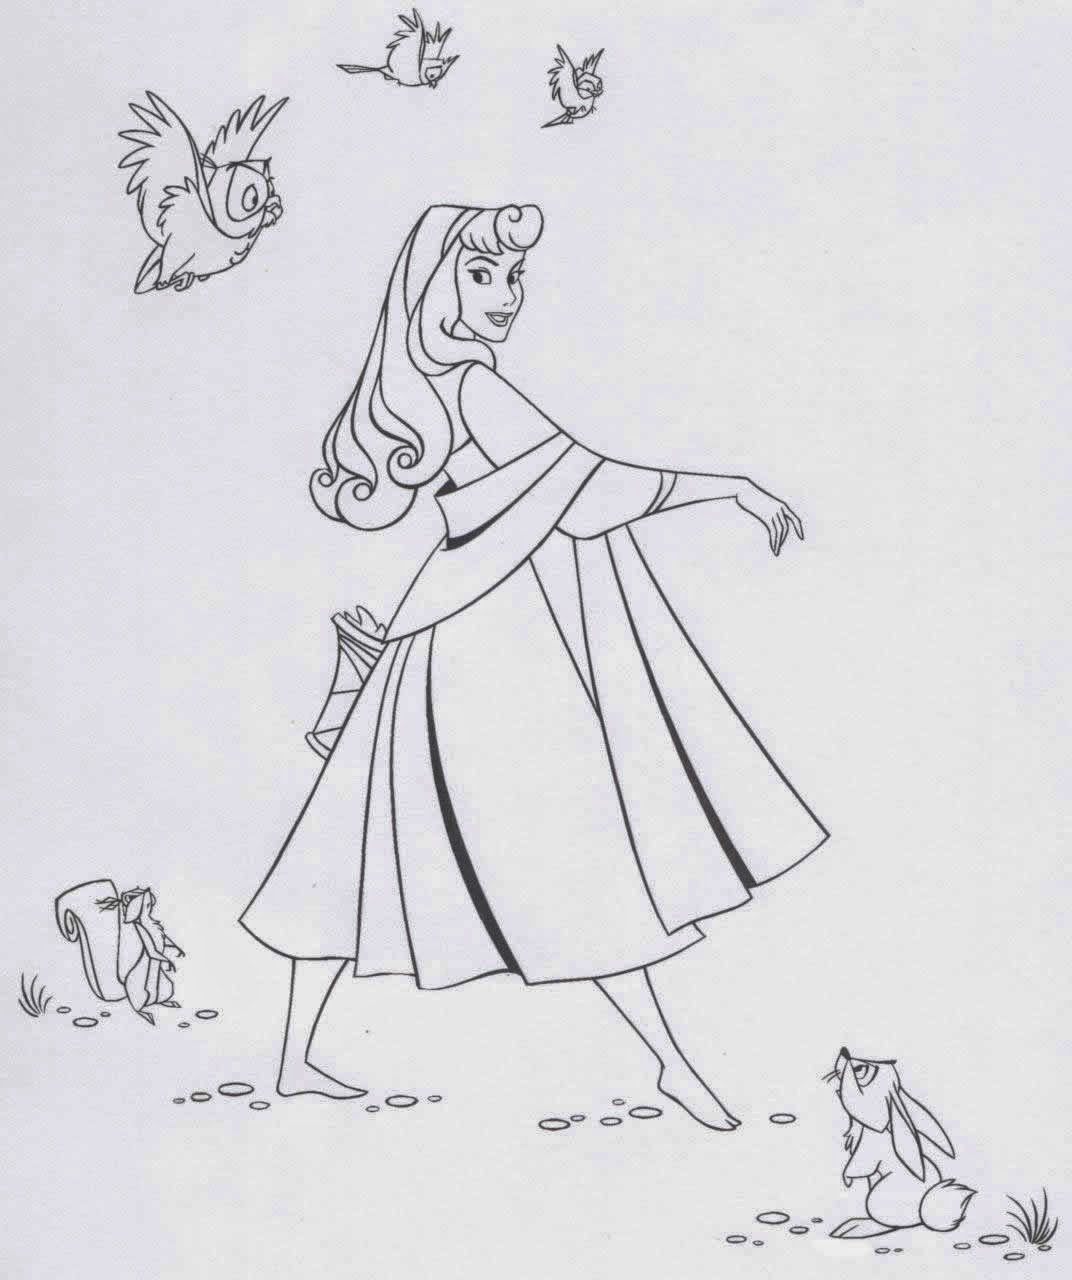 barbie dance coloring pages - photo#36